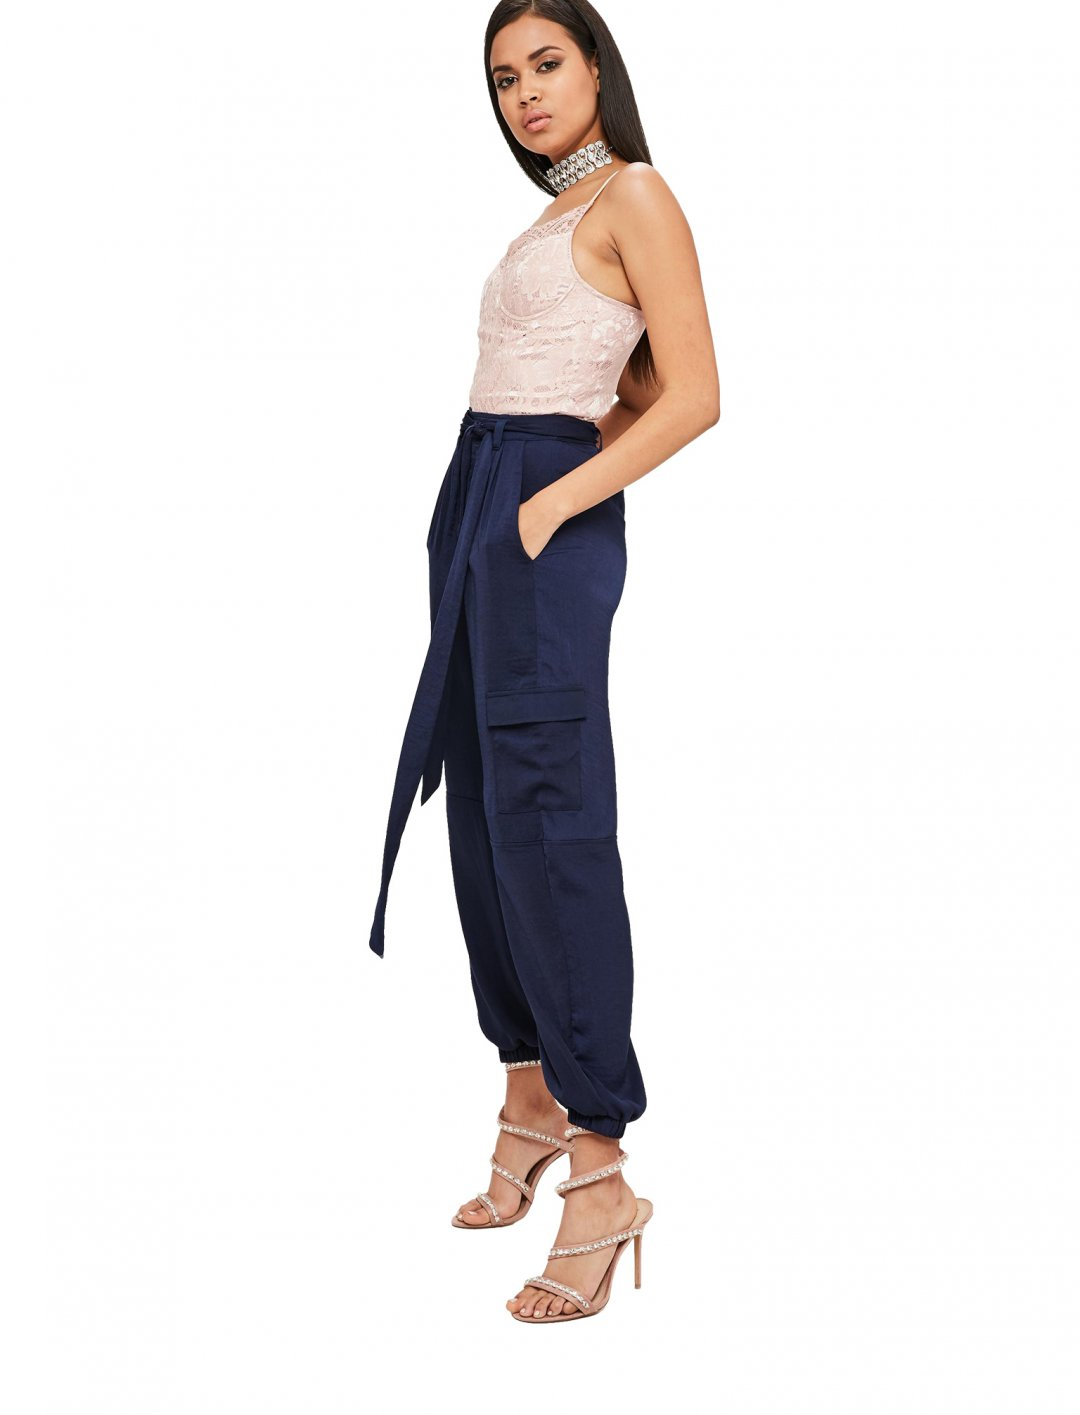 "Navy Satin Cargo Pants {""id"":5,""product_section_id"":1,""name"":""Clothing"",""order"":5} Carli Bybel x Missguided"